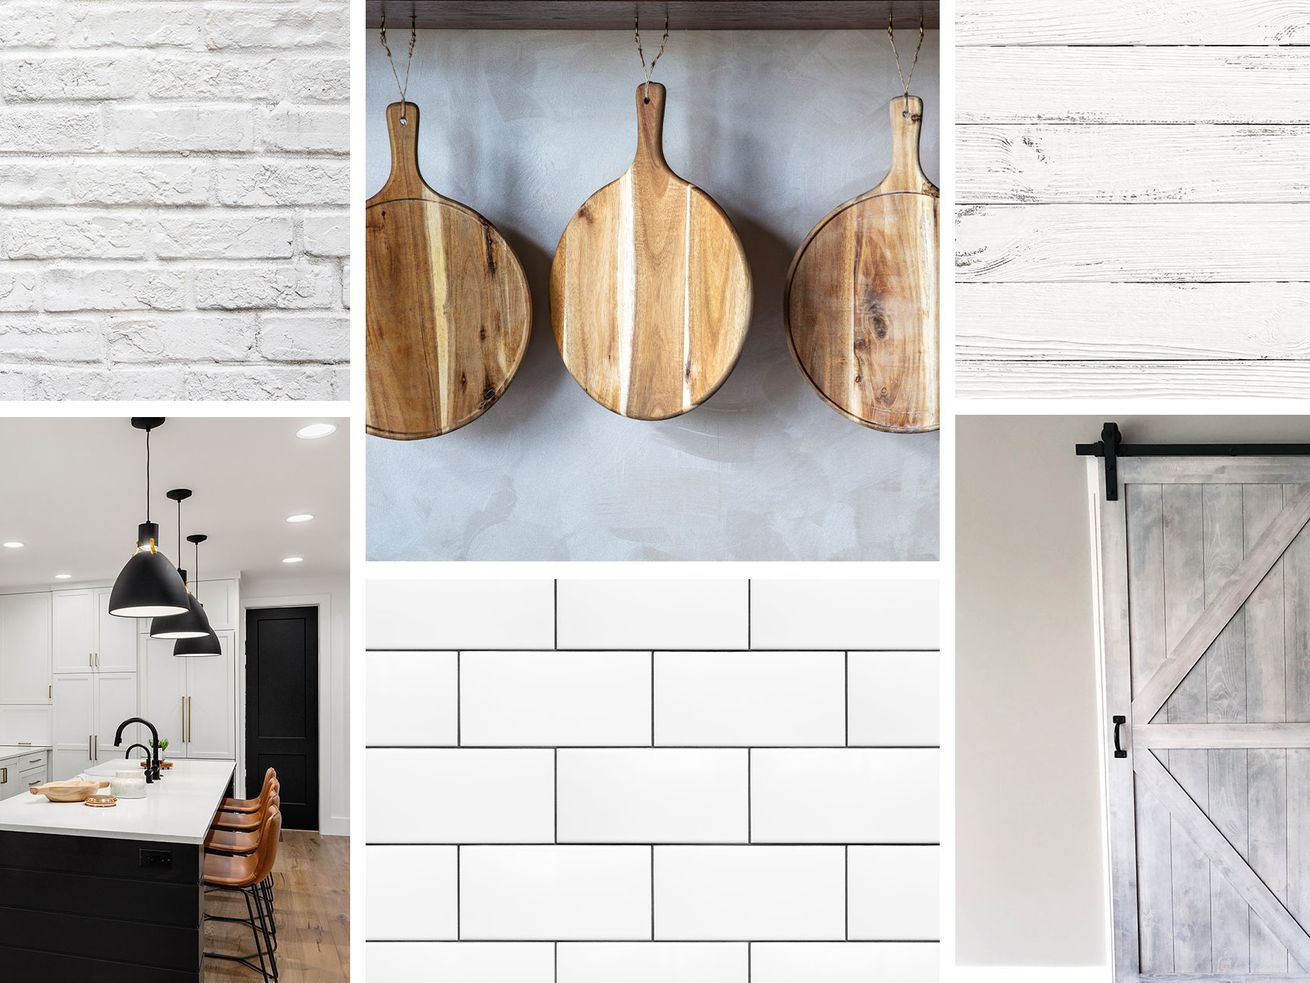 A collage of farmhouse style decor, including white brick, hanging cookery, shiplap, white subway tiles, and a kitchen.